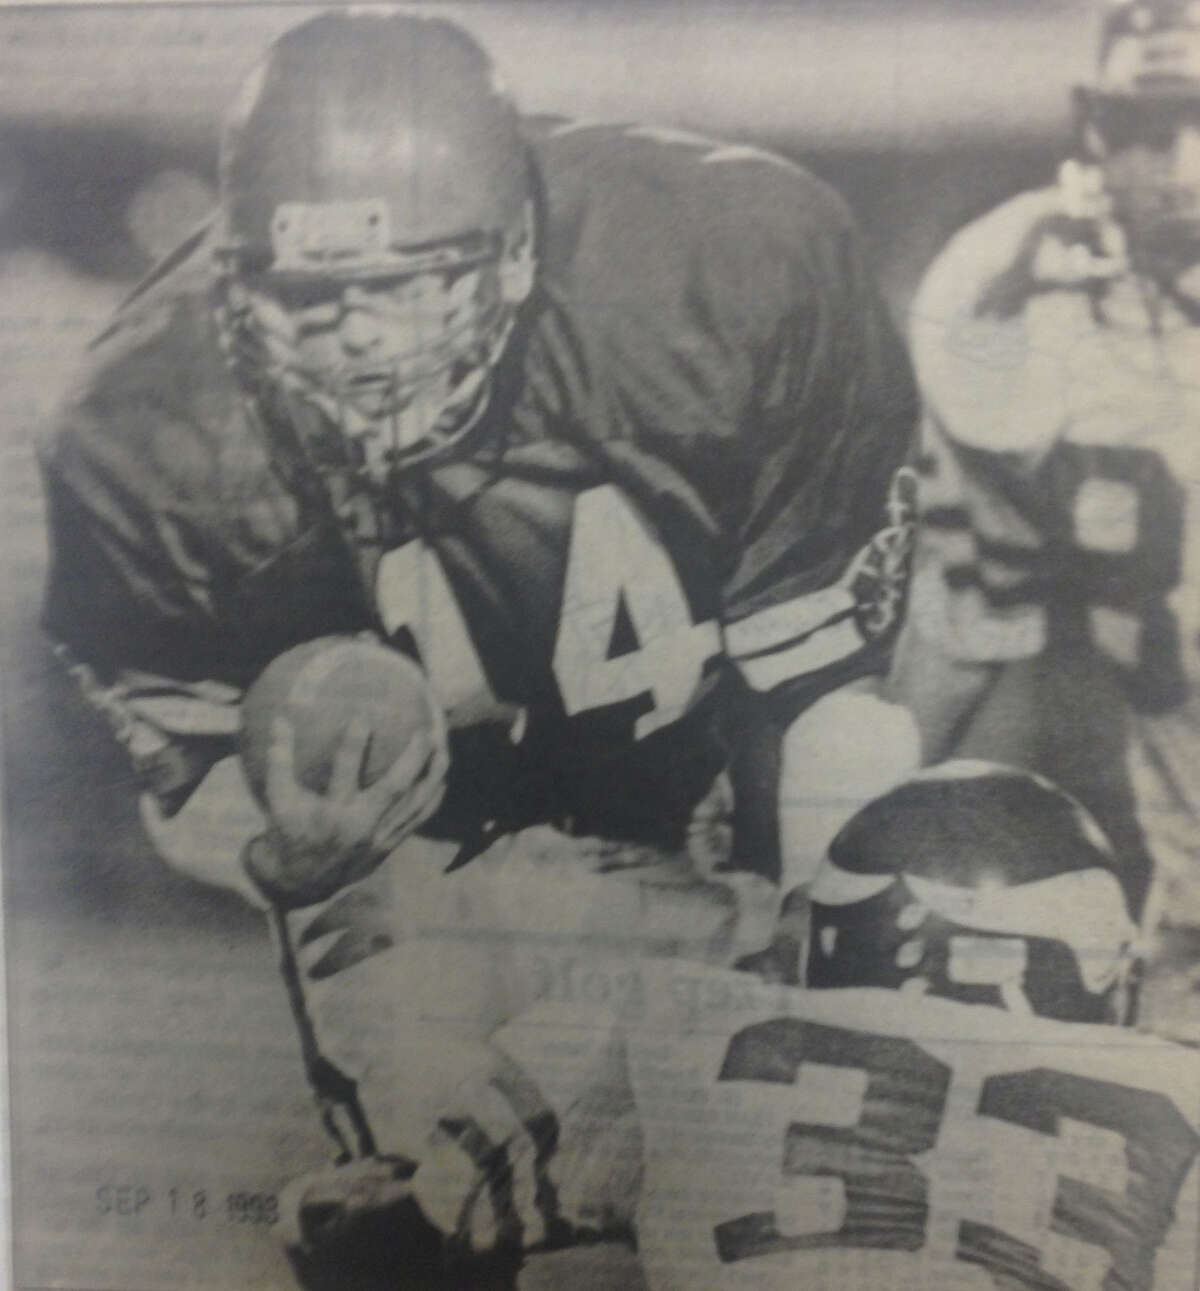 Midland High's Rod Bauer (14) powers his way through the Flint Northern defensive line at Midland Stadium on Friday night, Sept. 17, 1993. Midland won 23-6.